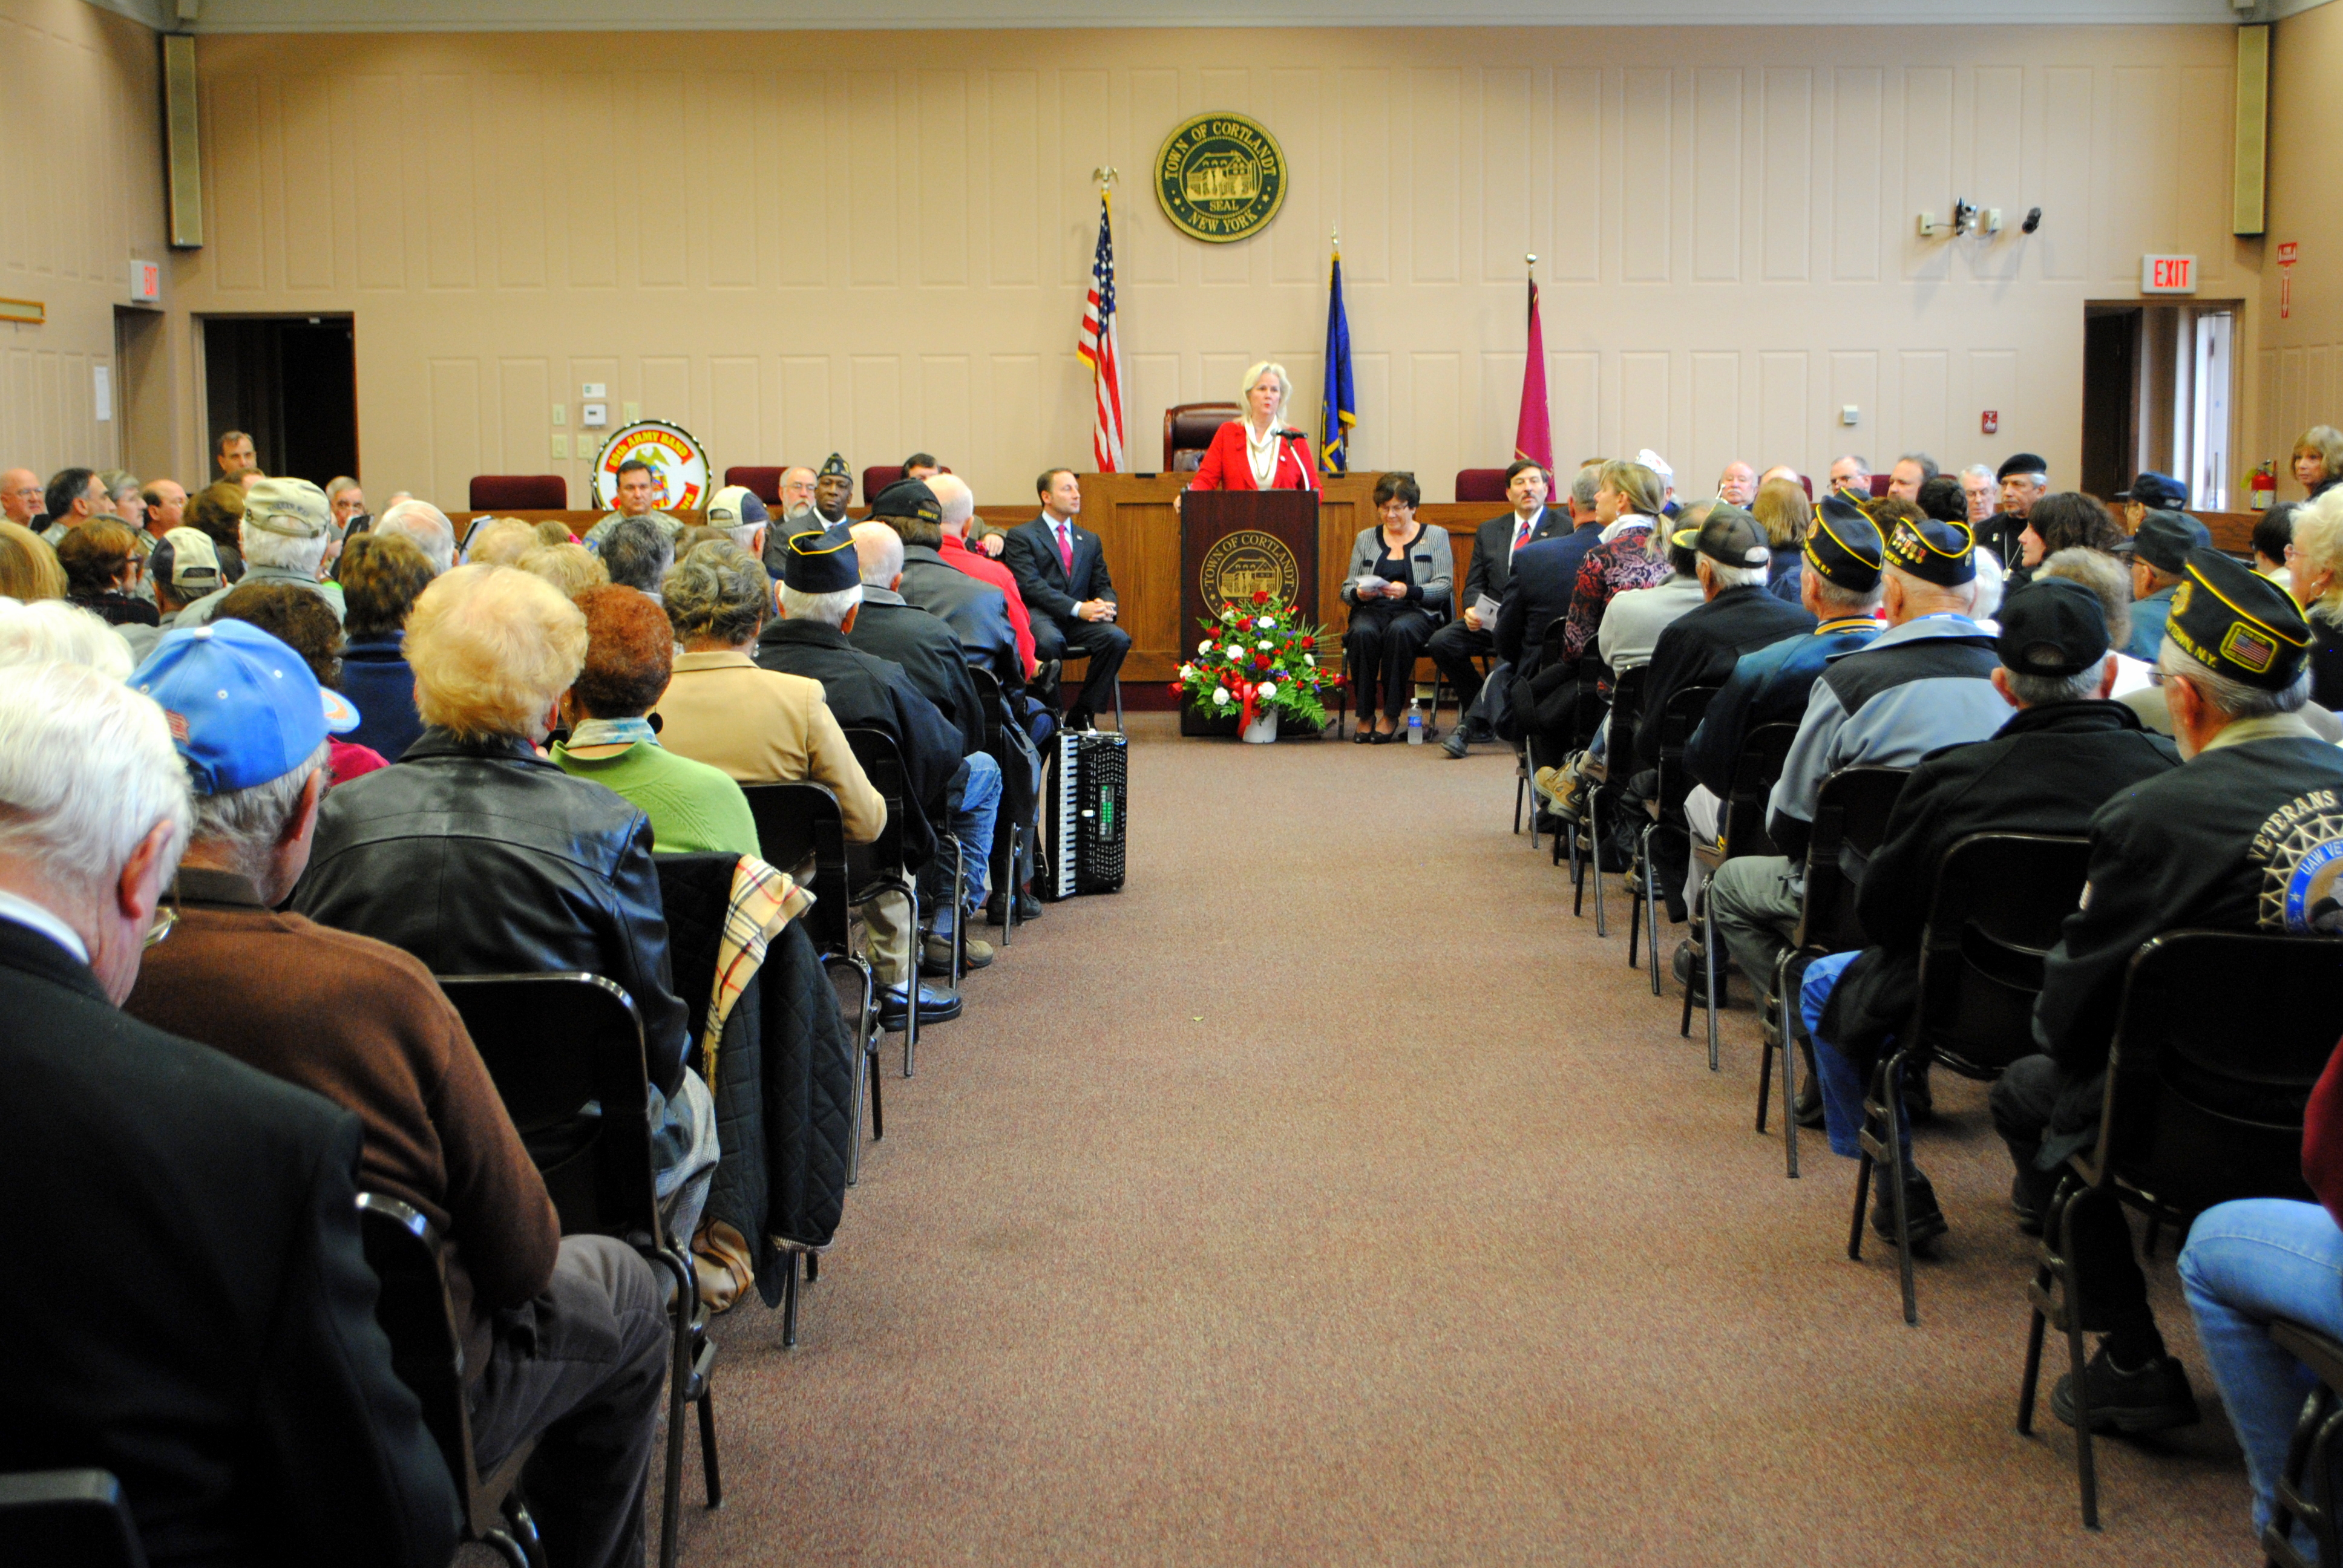 More than 150 people packed Cortlandt Town Hall on Monday, in observance of Veterans Day.